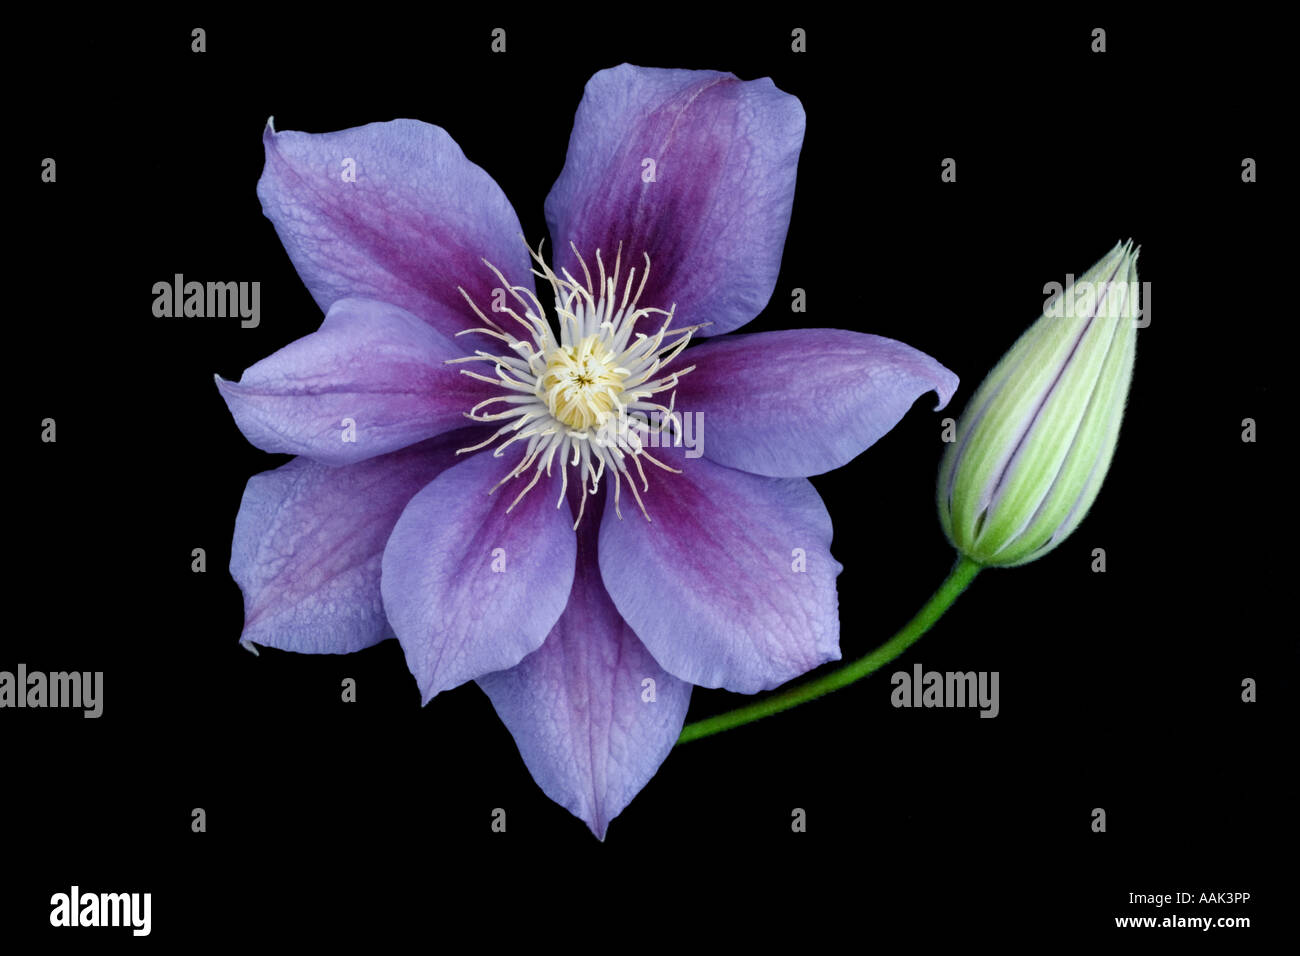 clematis etoile violette stockfoto bild 12648765 alamy. Black Bedroom Furniture Sets. Home Design Ideas